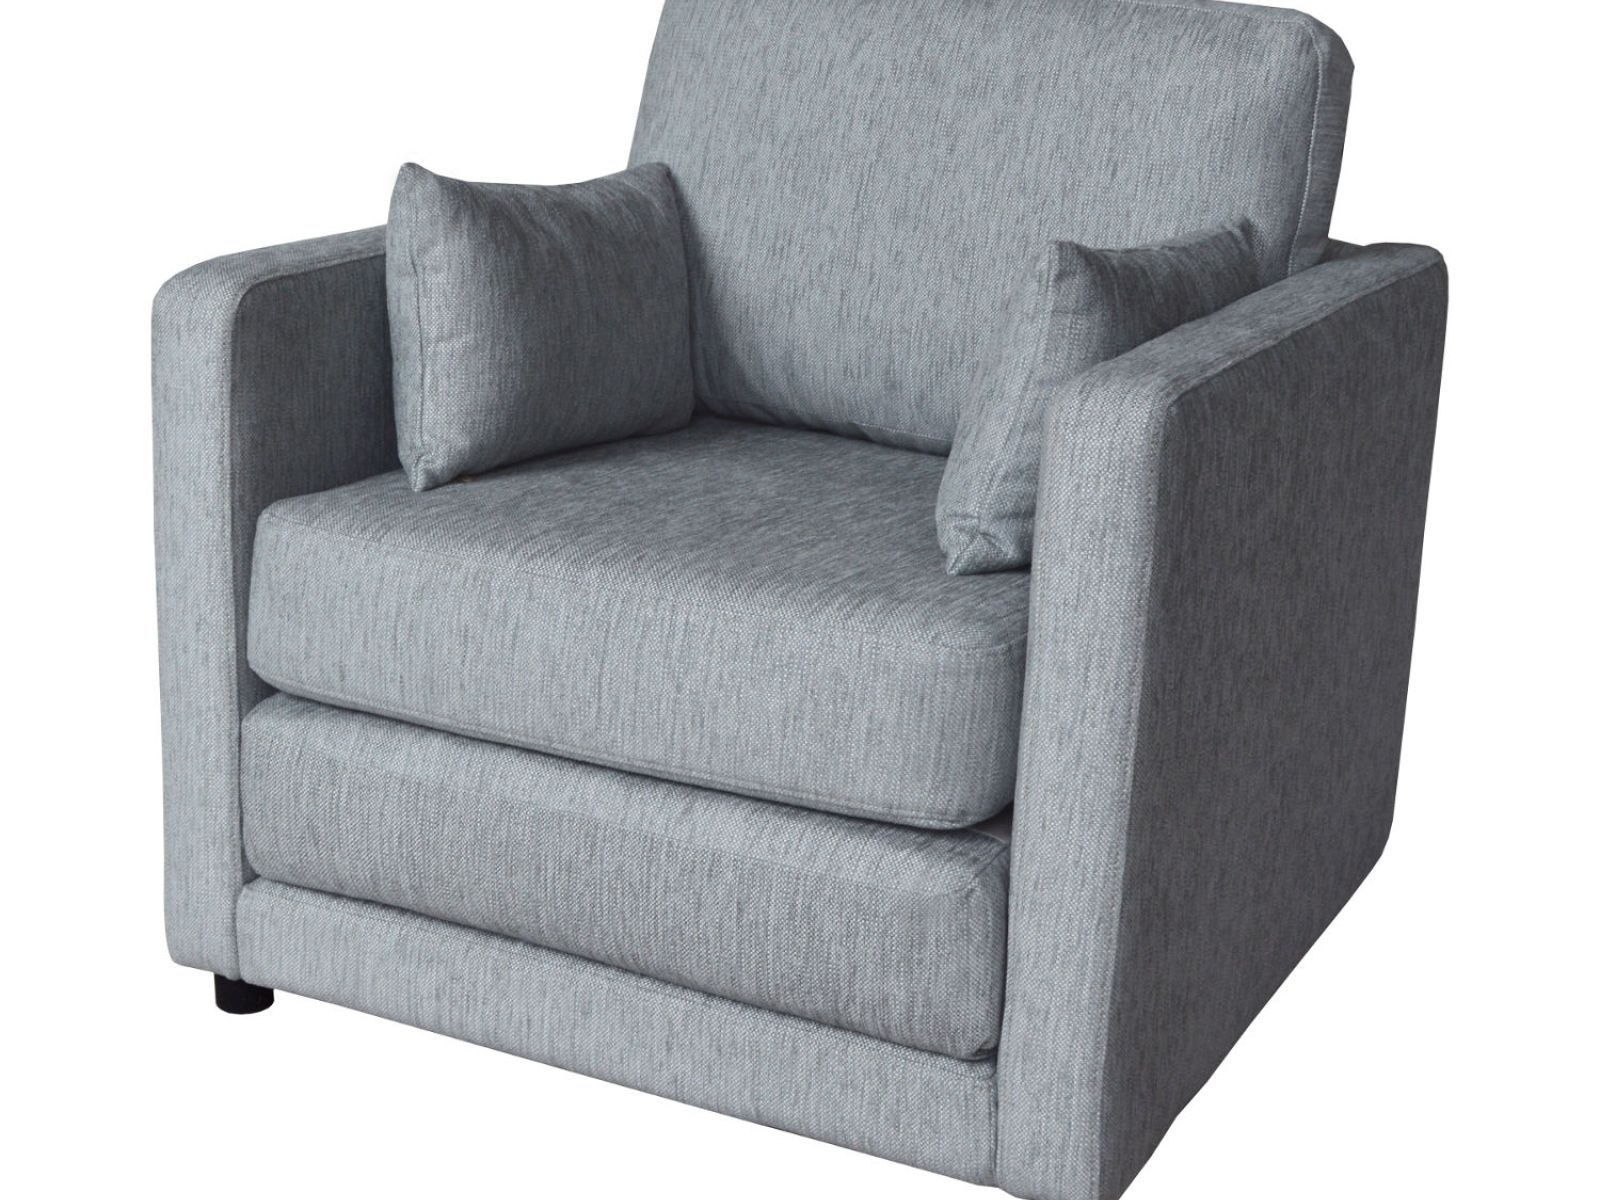 Sofas Center 442d955ccd012f2ae6c00a288dfe841191e7de9e H A Haru For Single Sofa Bed Chairs (Image 10 of 15)